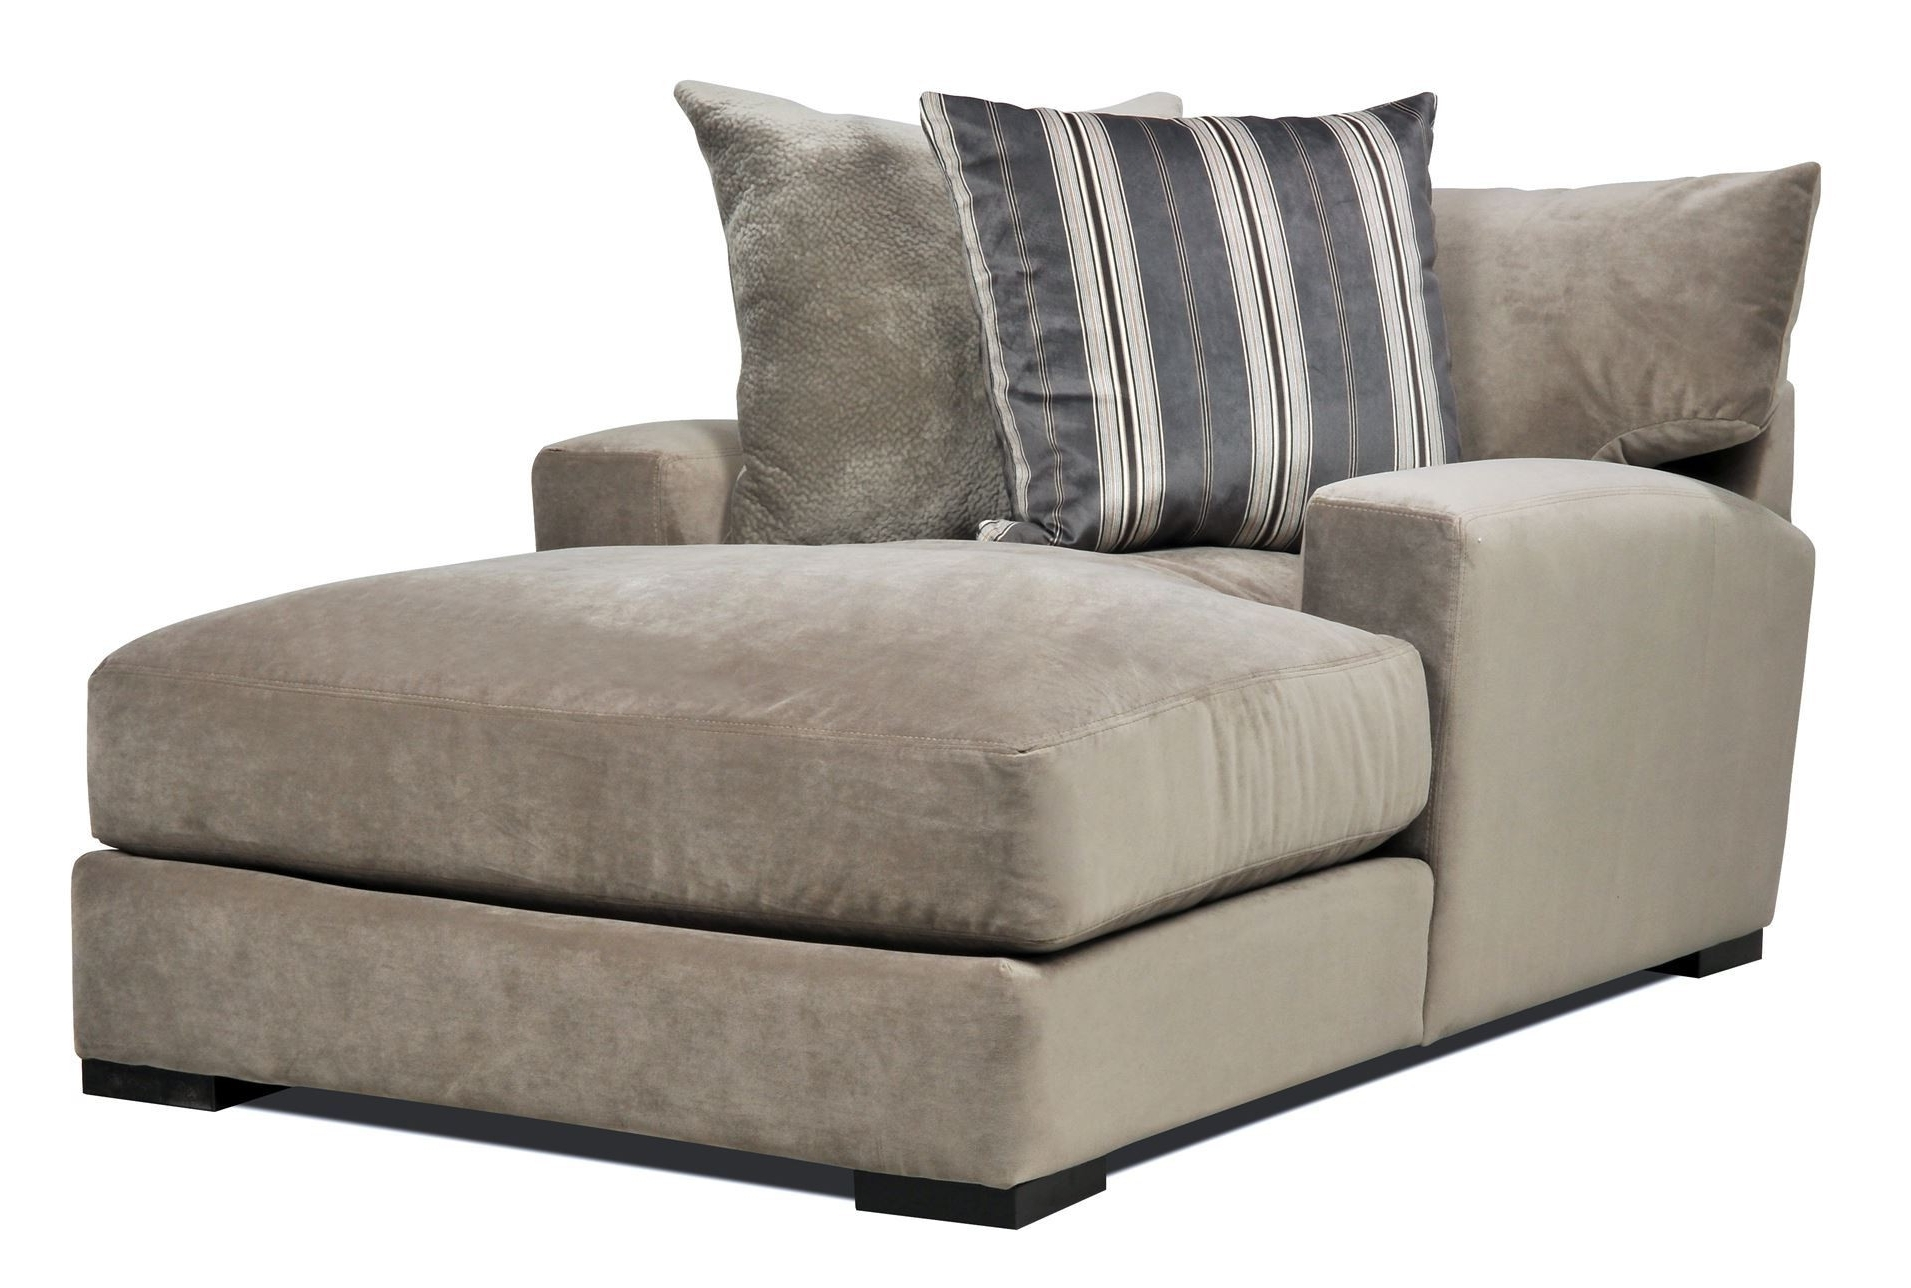 Oversized Chaise Lounges Throughout Most Recent Furniture: One Arm Loveseat New Home Design Clubmona Wonderful (View 3 of 15)